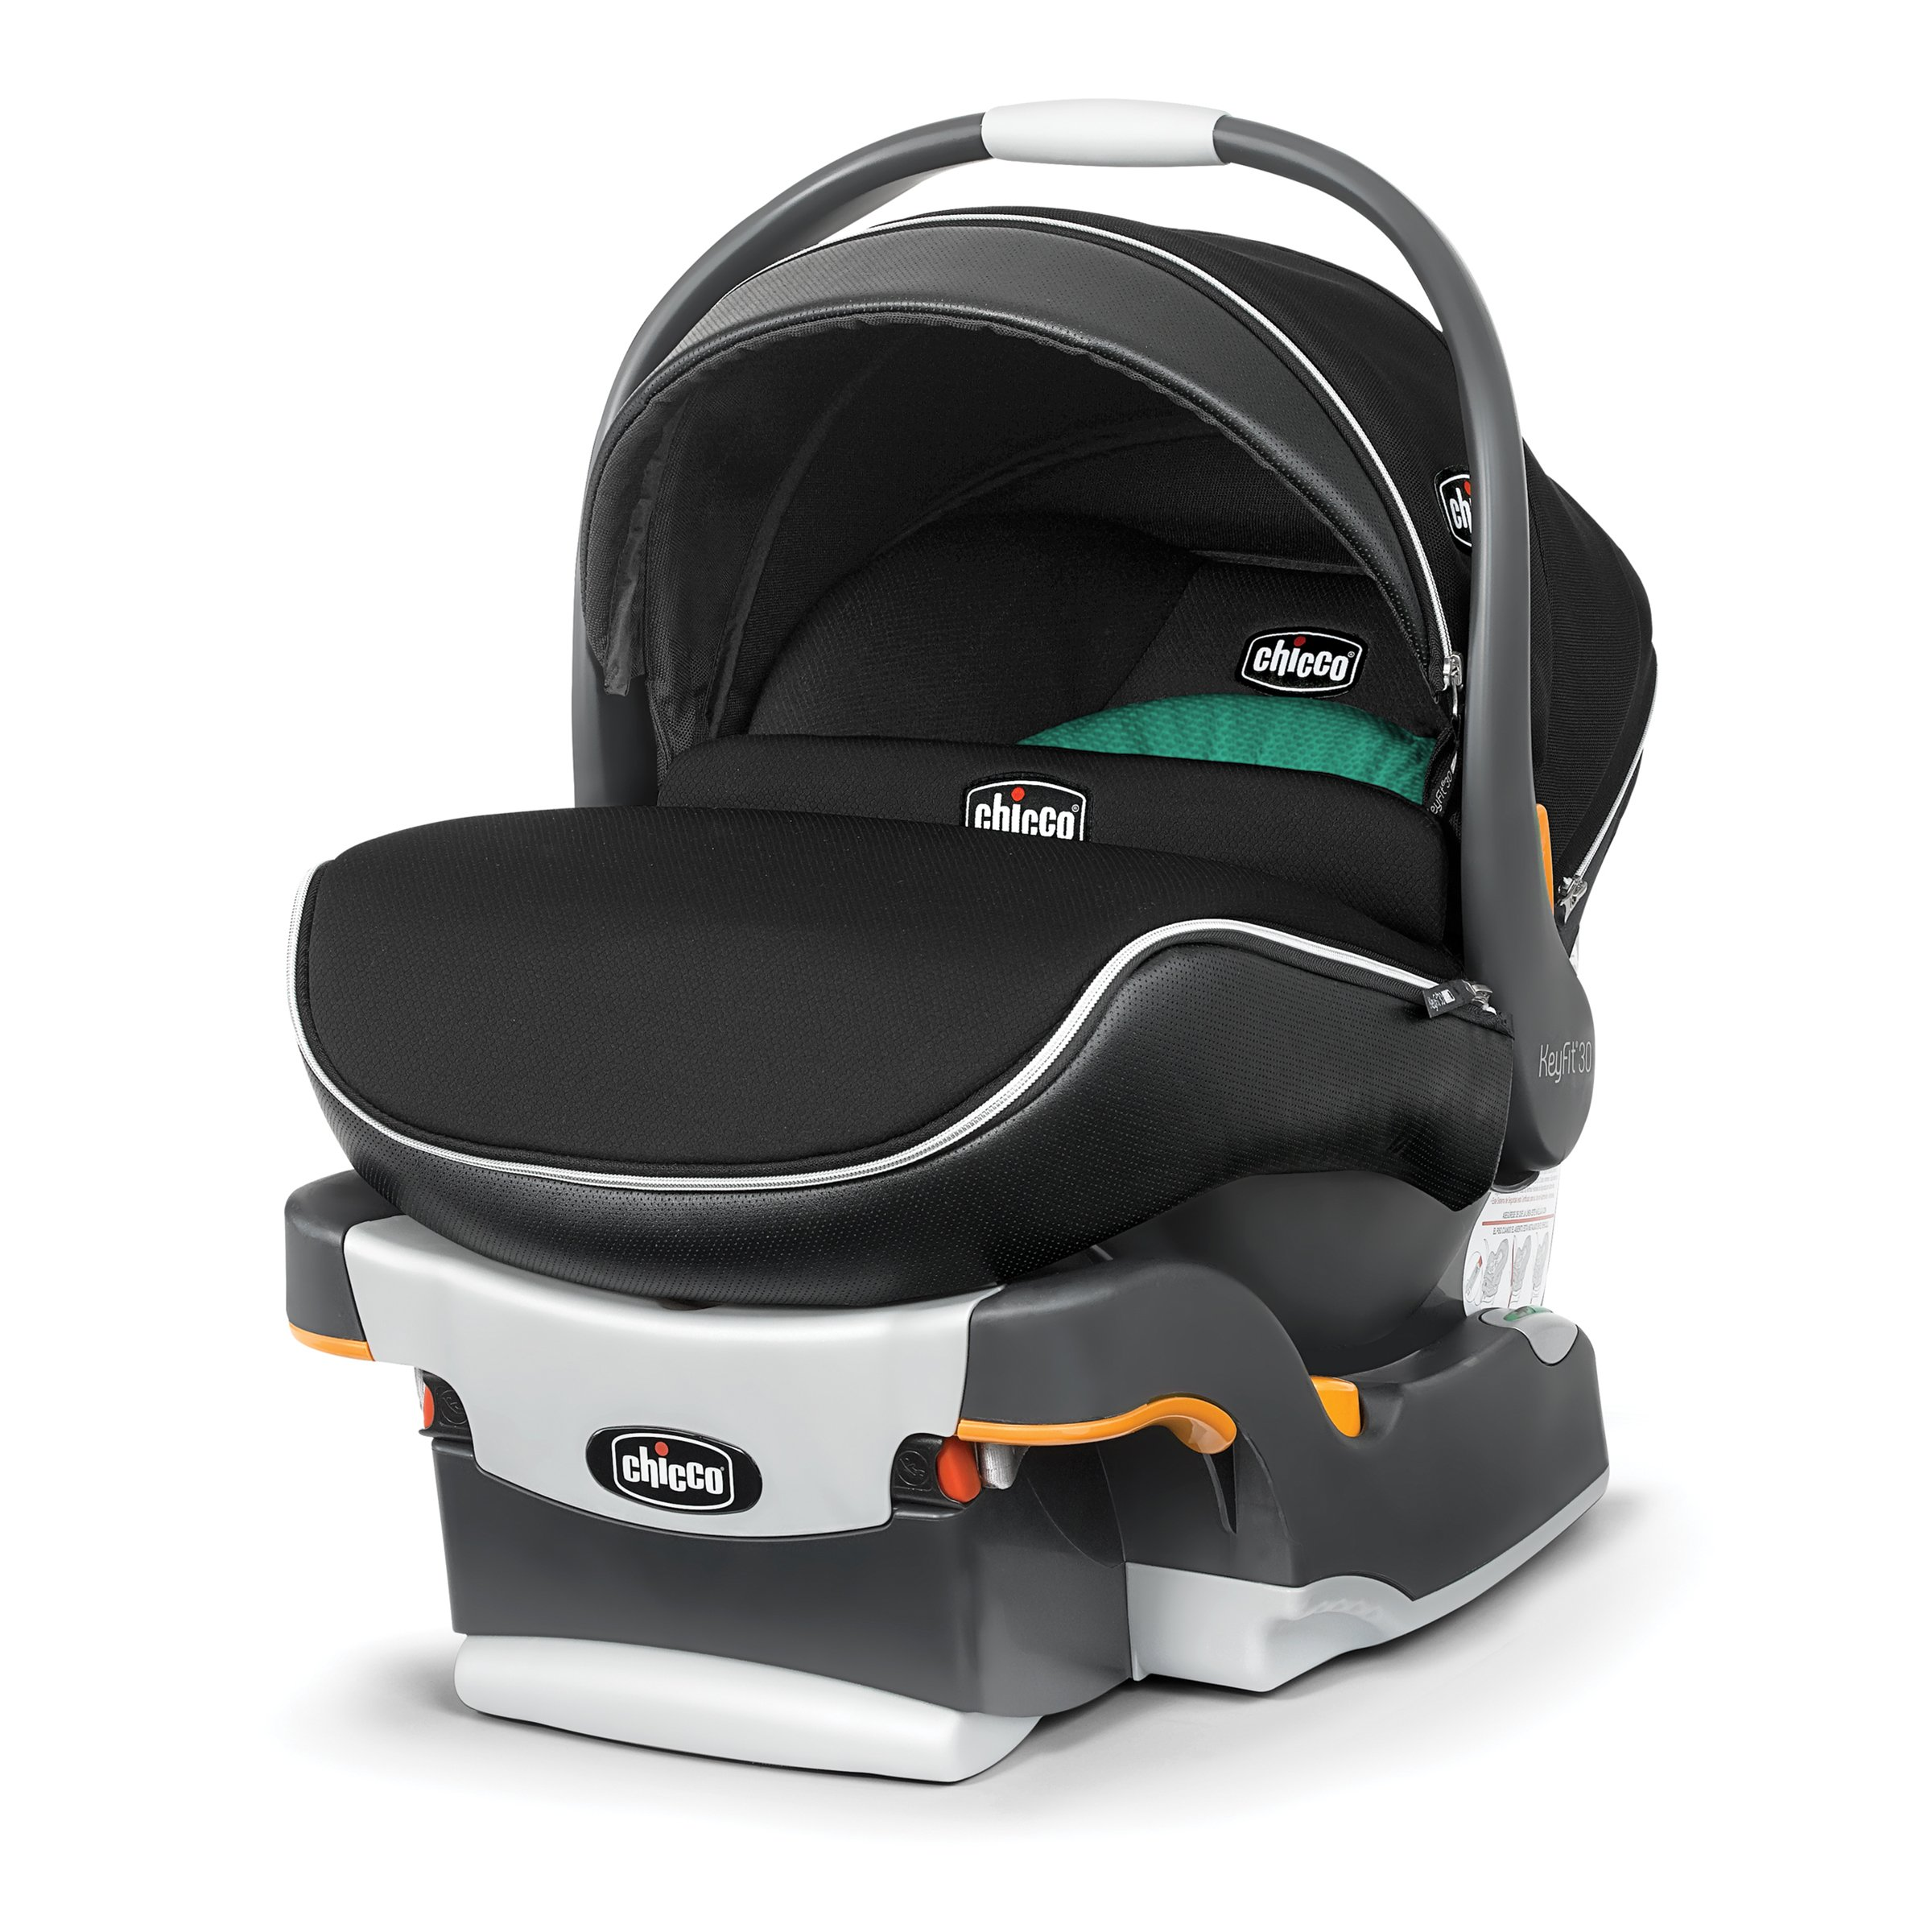 Amazon.com : Chicco NextFit iX Zip Air Convertible Car Seat, Surf : Baby